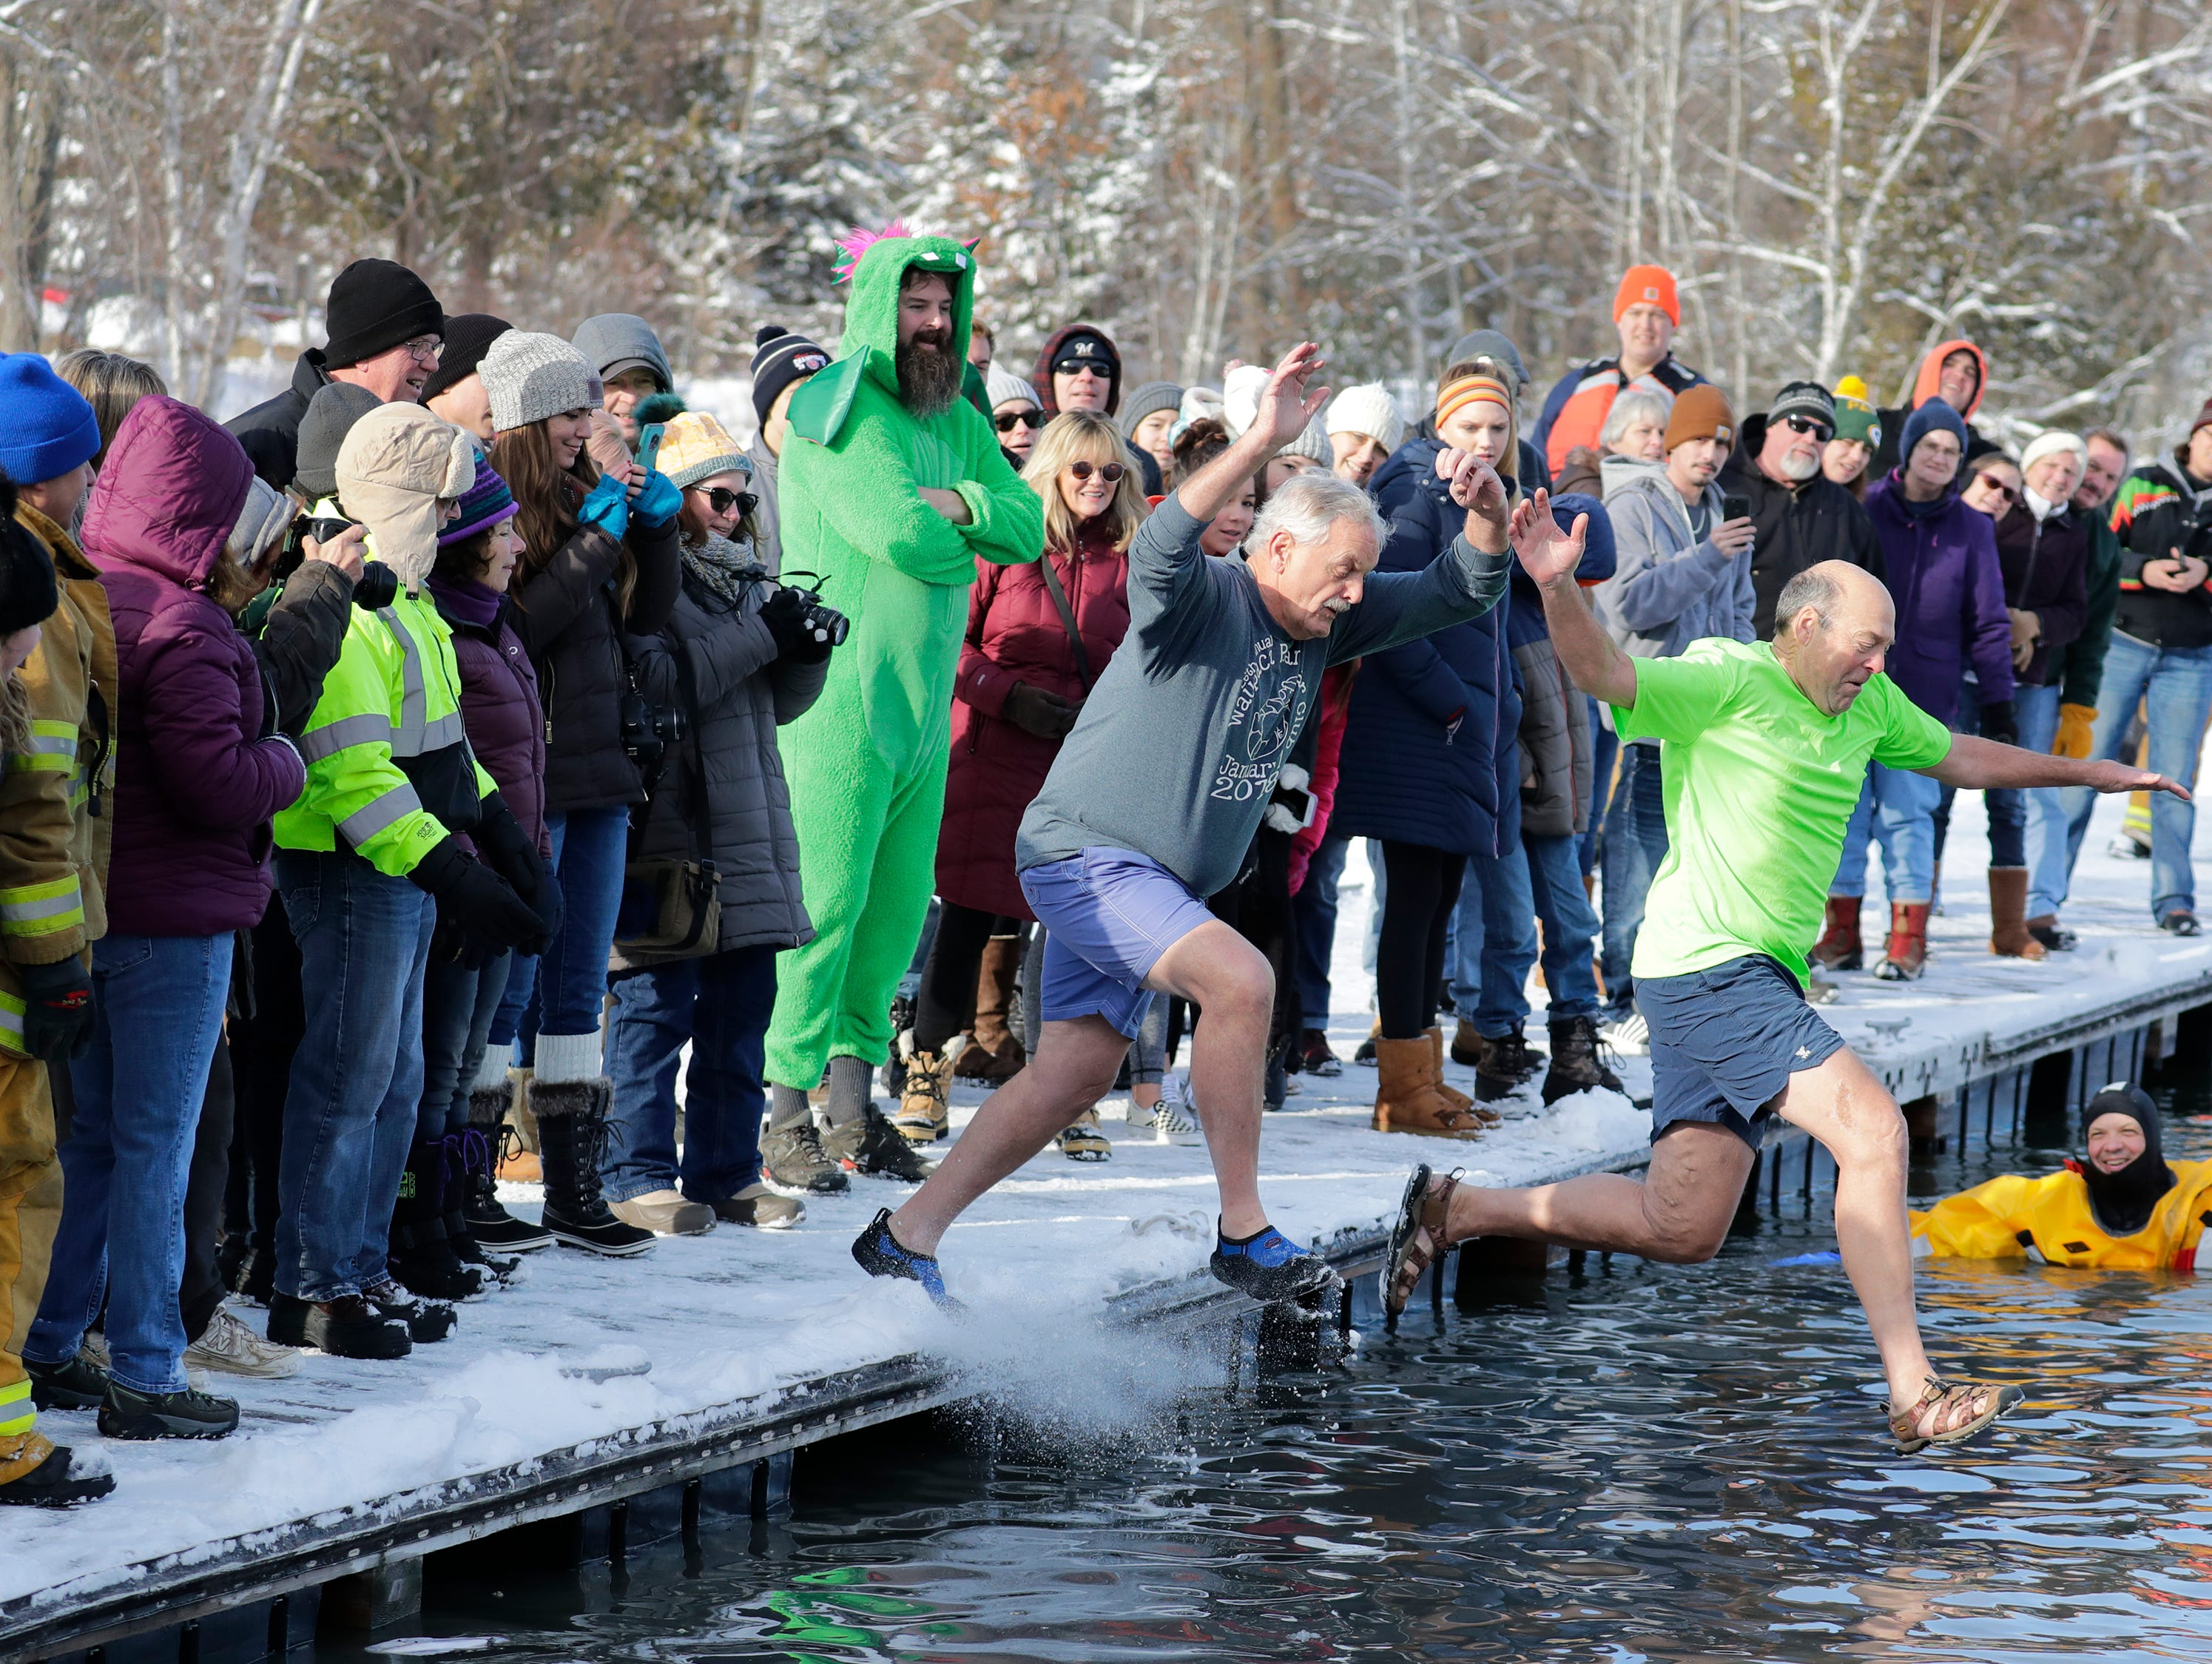 Joe Farmer, left, of Wausau and Larry Gordon of Waupaca jump into frigid waters together during the Polar Bear Plunge Tuesday, January 1, 2019, at Becker Marine on Lime Kiln Lake in Waupaca, Wis. Dan Powers/USA TODAY NETWORK-Wisconsin